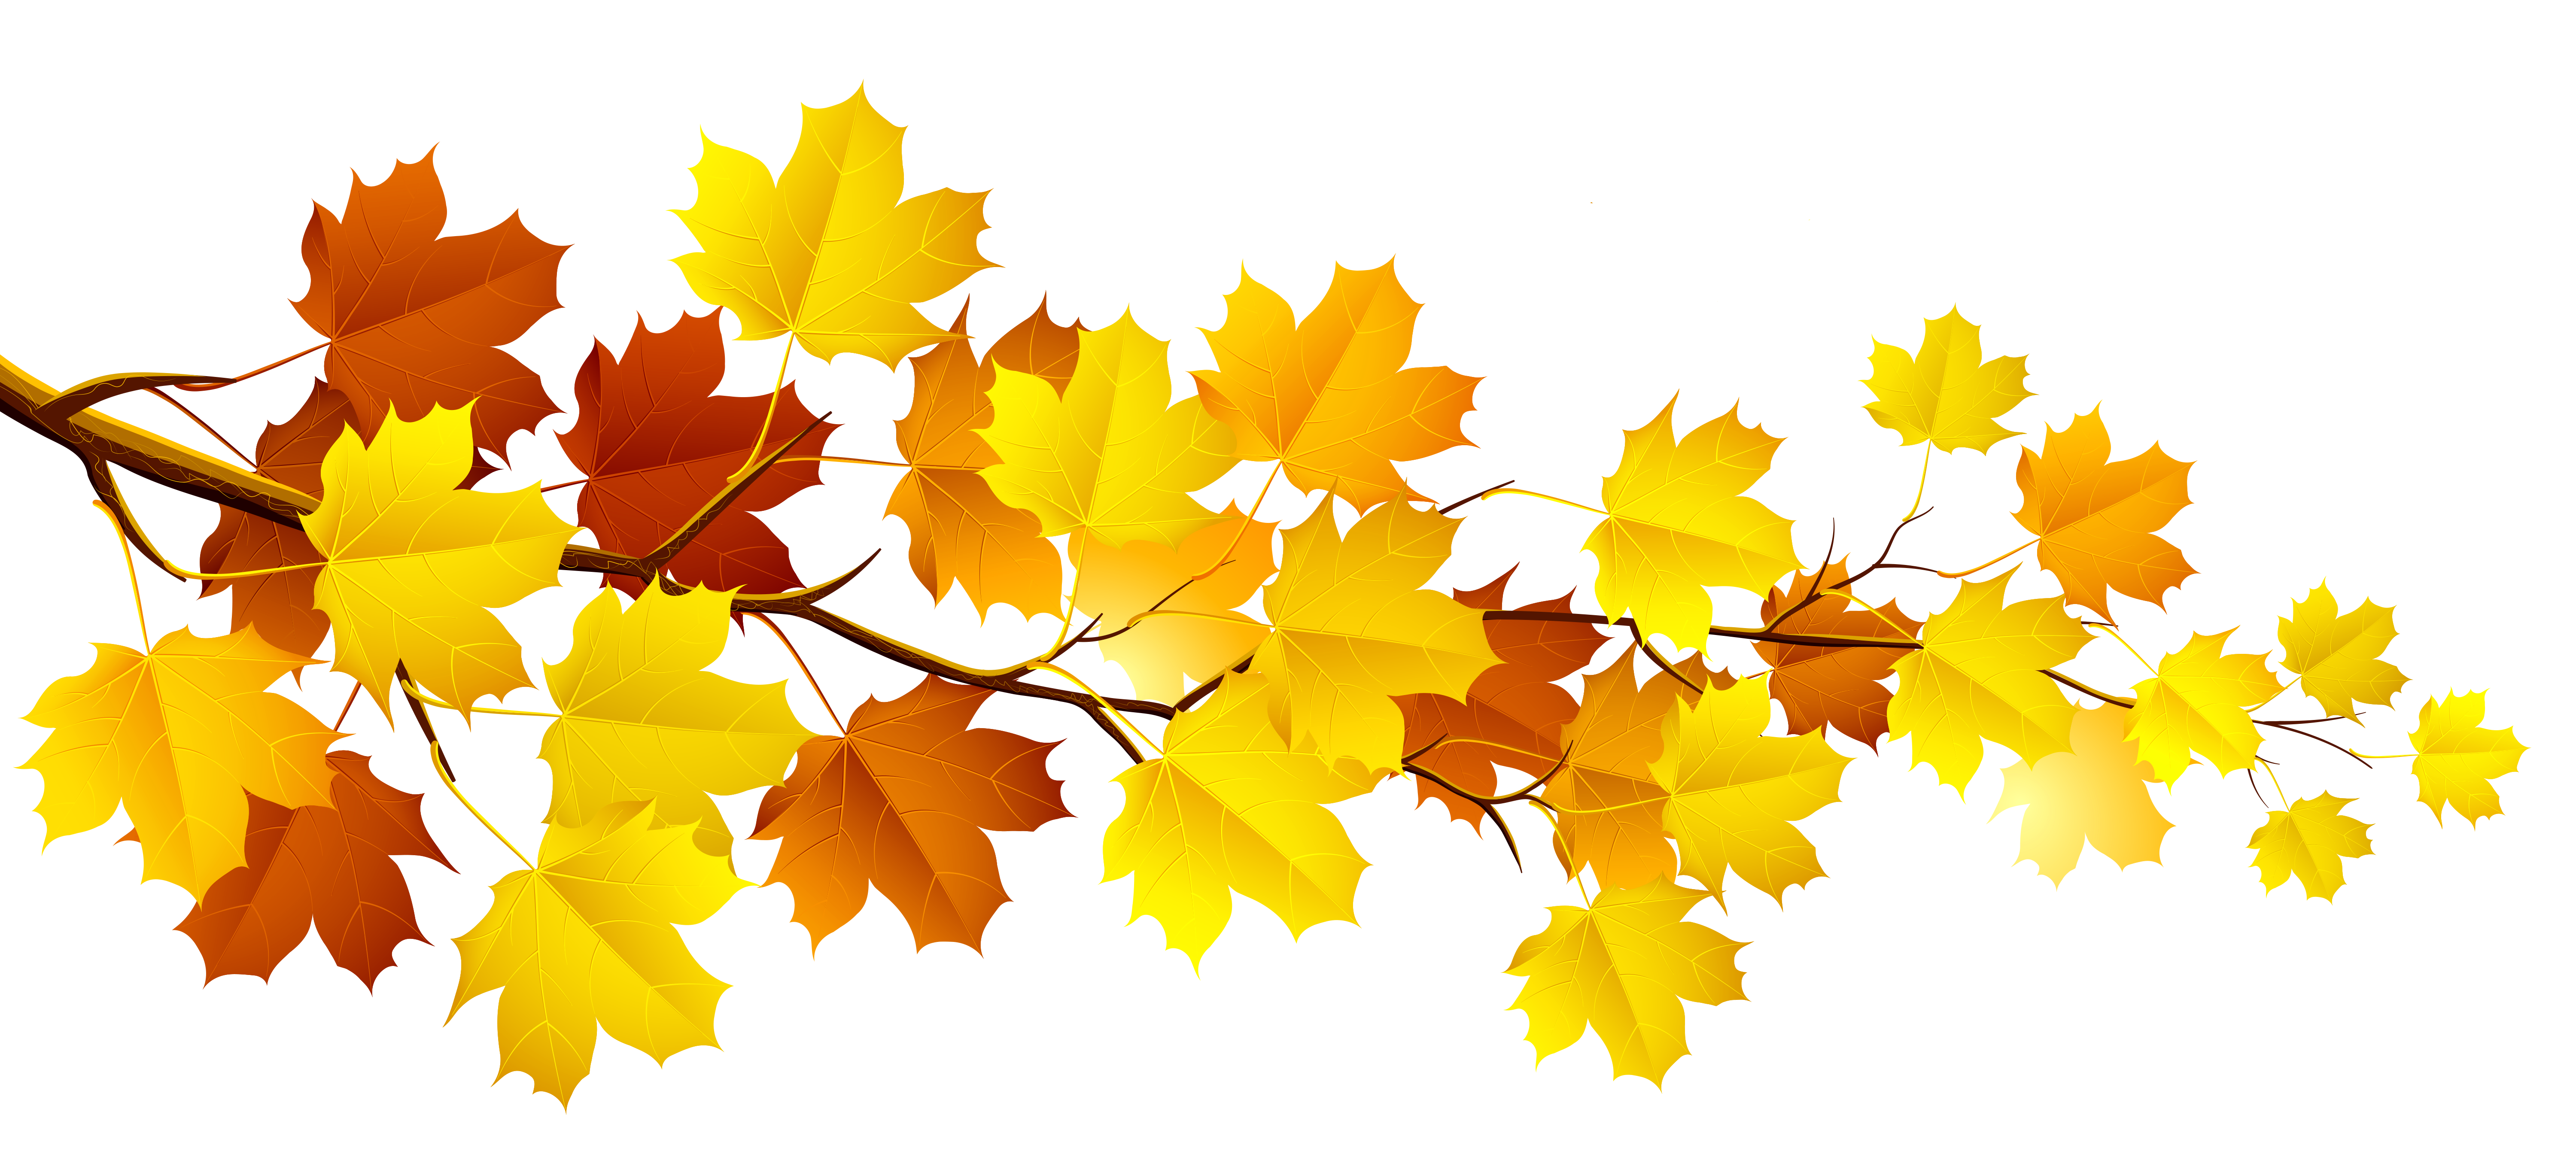 Fall leaves free images. Vines clipart autumn